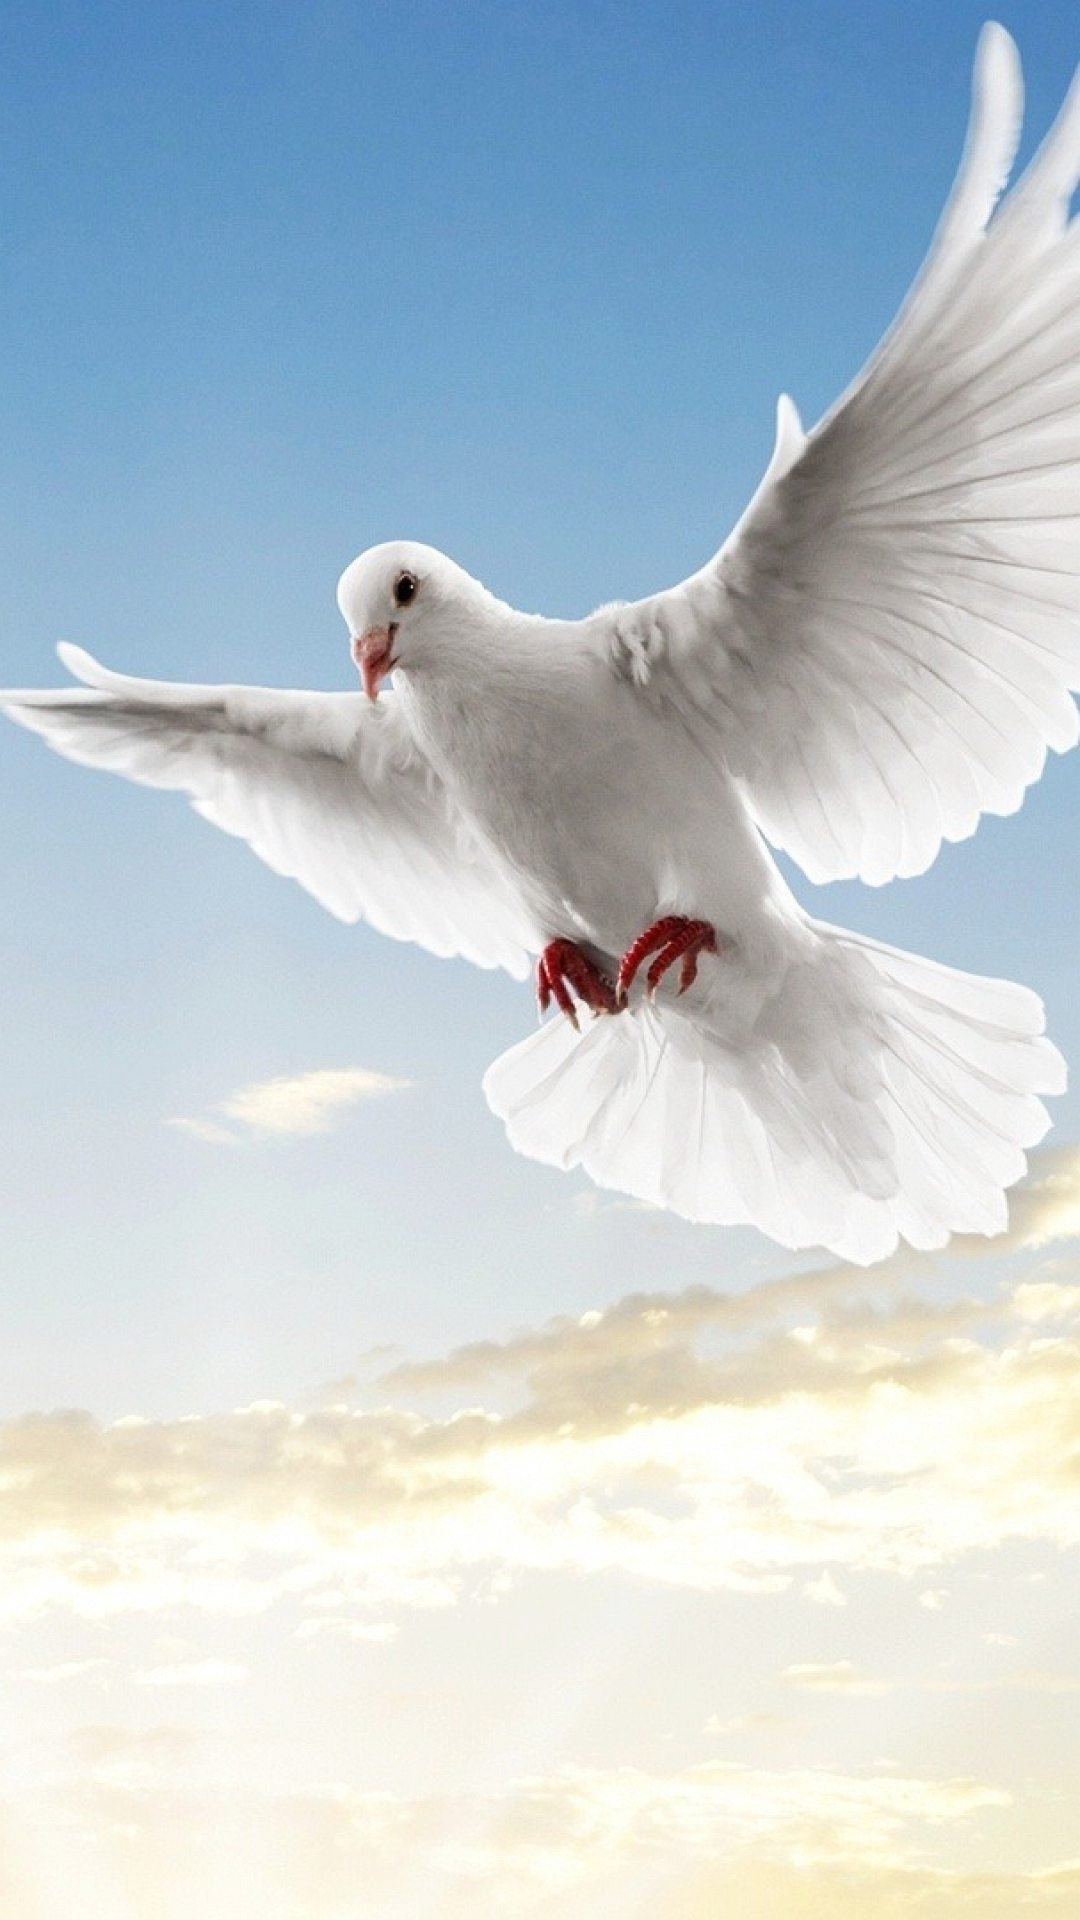 Dove peace symbol - Best htc one wallpapers, free and easy to download